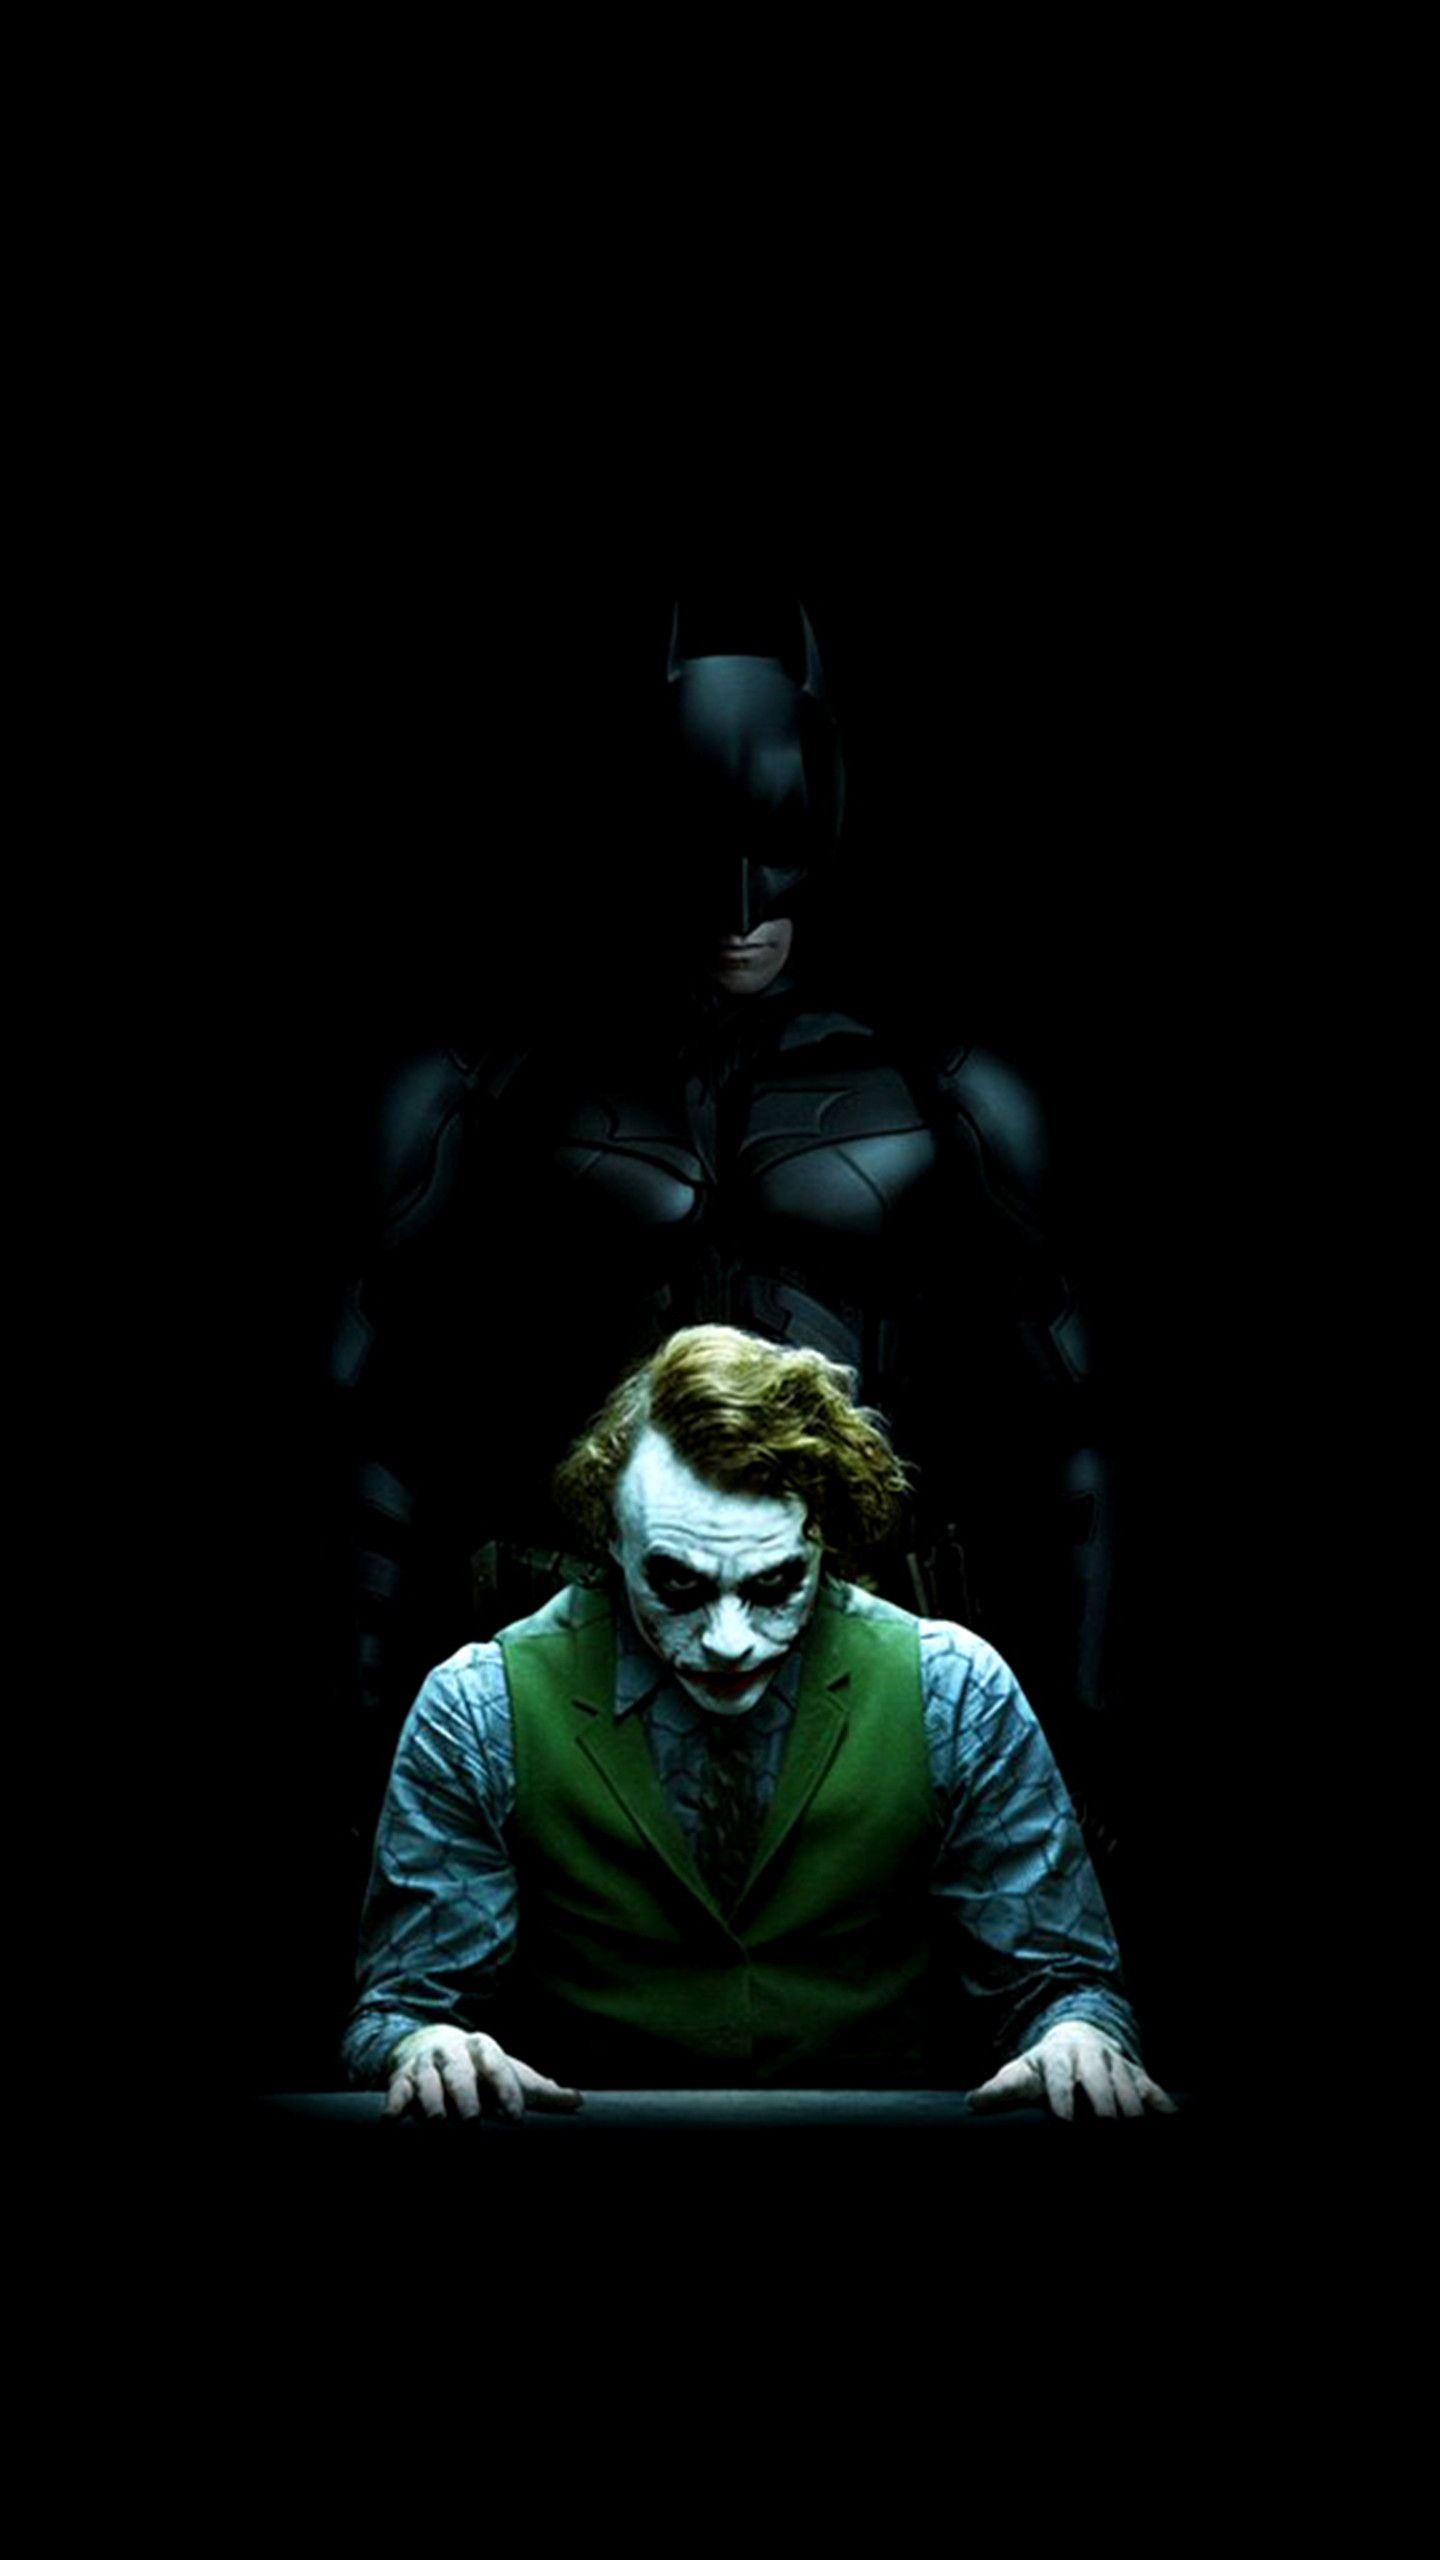 Batman and Joker – The Dark Knight ❤❤. Find this Pin and more on Amoled  Lockscreen Homescreen Wallpapers …